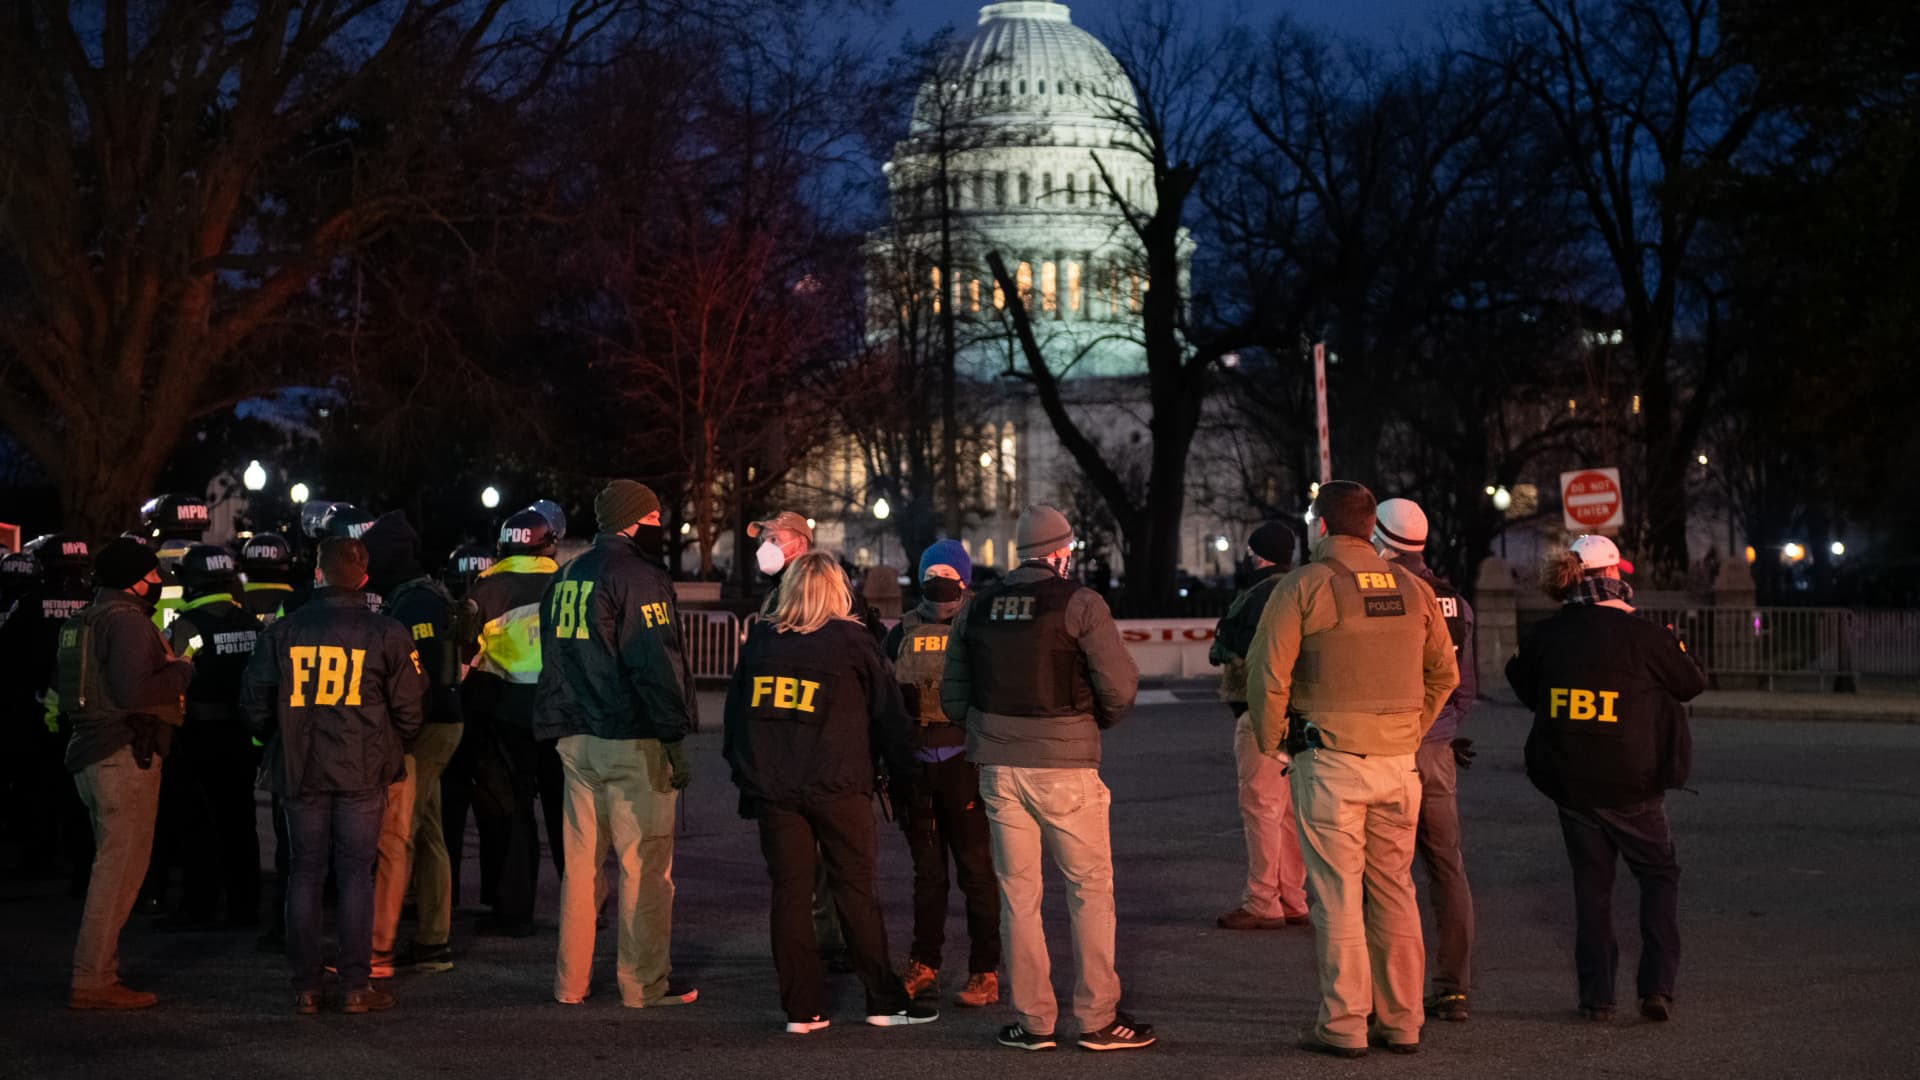 Federal Bureau of Investigation (FBI) agents arrive at Capitol Hill in Washington, D.C., U.S., on Jan. 6, 2021.